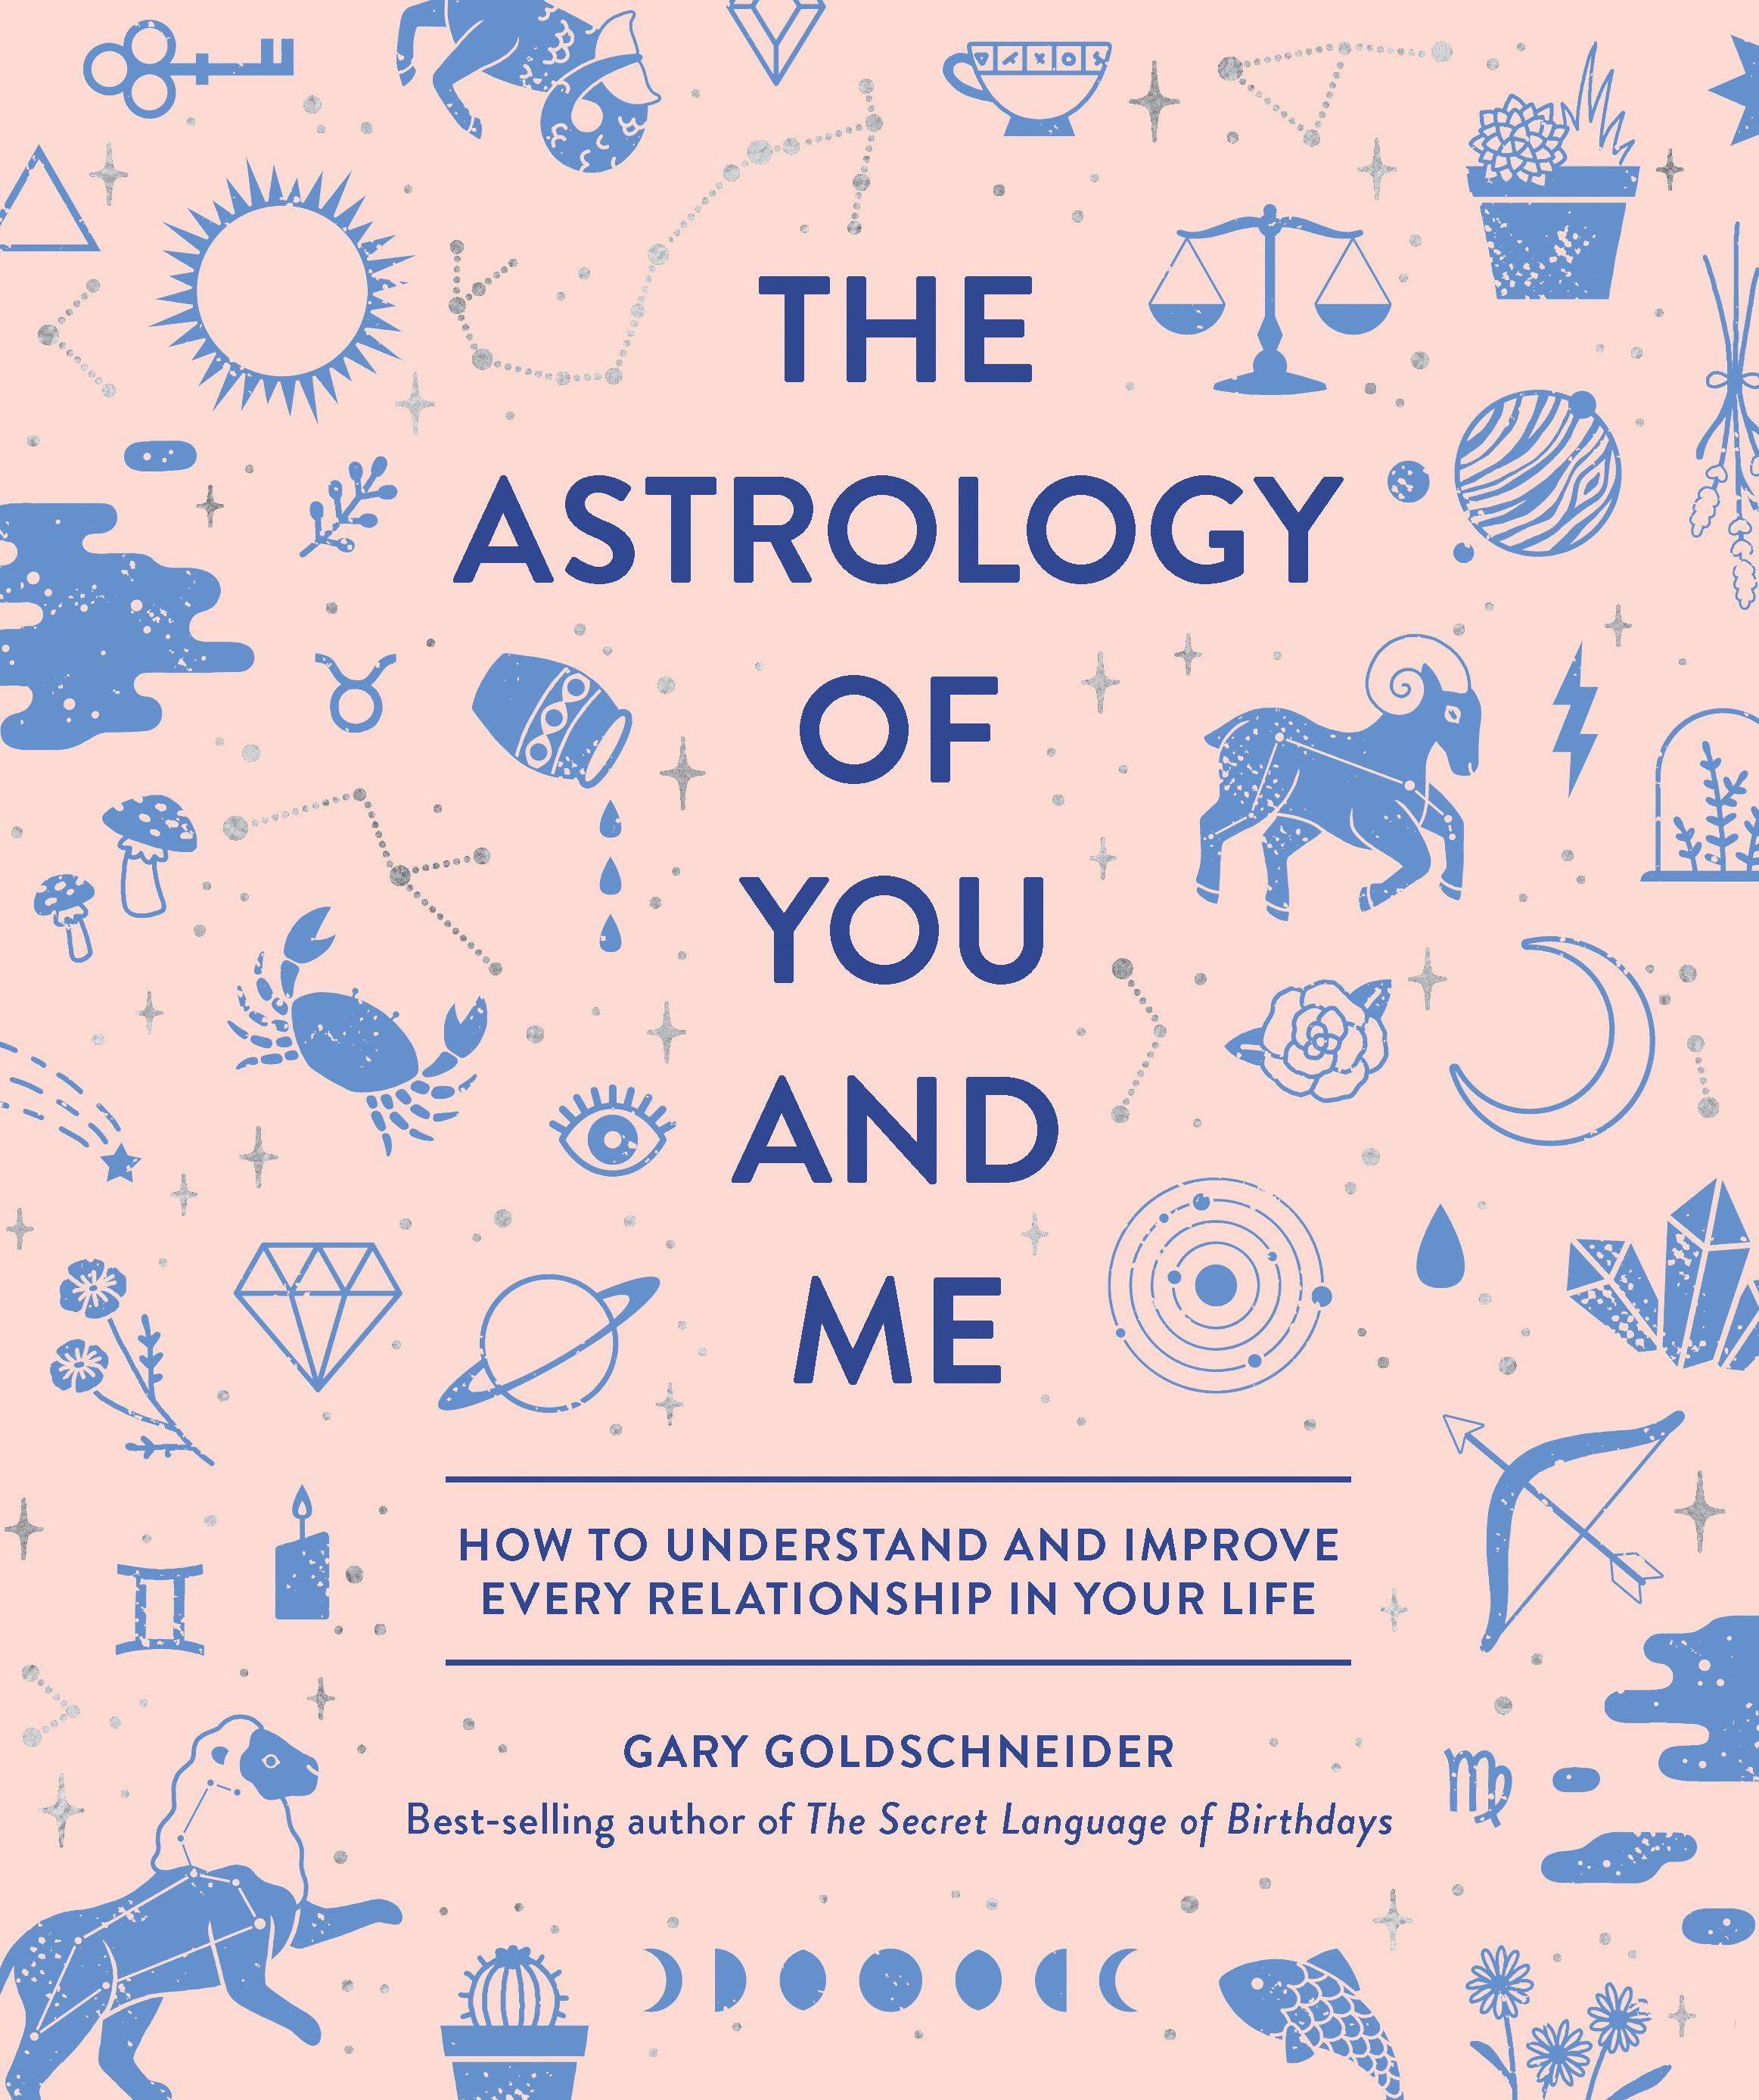 I believe all astrology signs can be compatible when we commit to understanding each other. This book helped me grasp sextile, conjunct and other significant zodiac relationships.